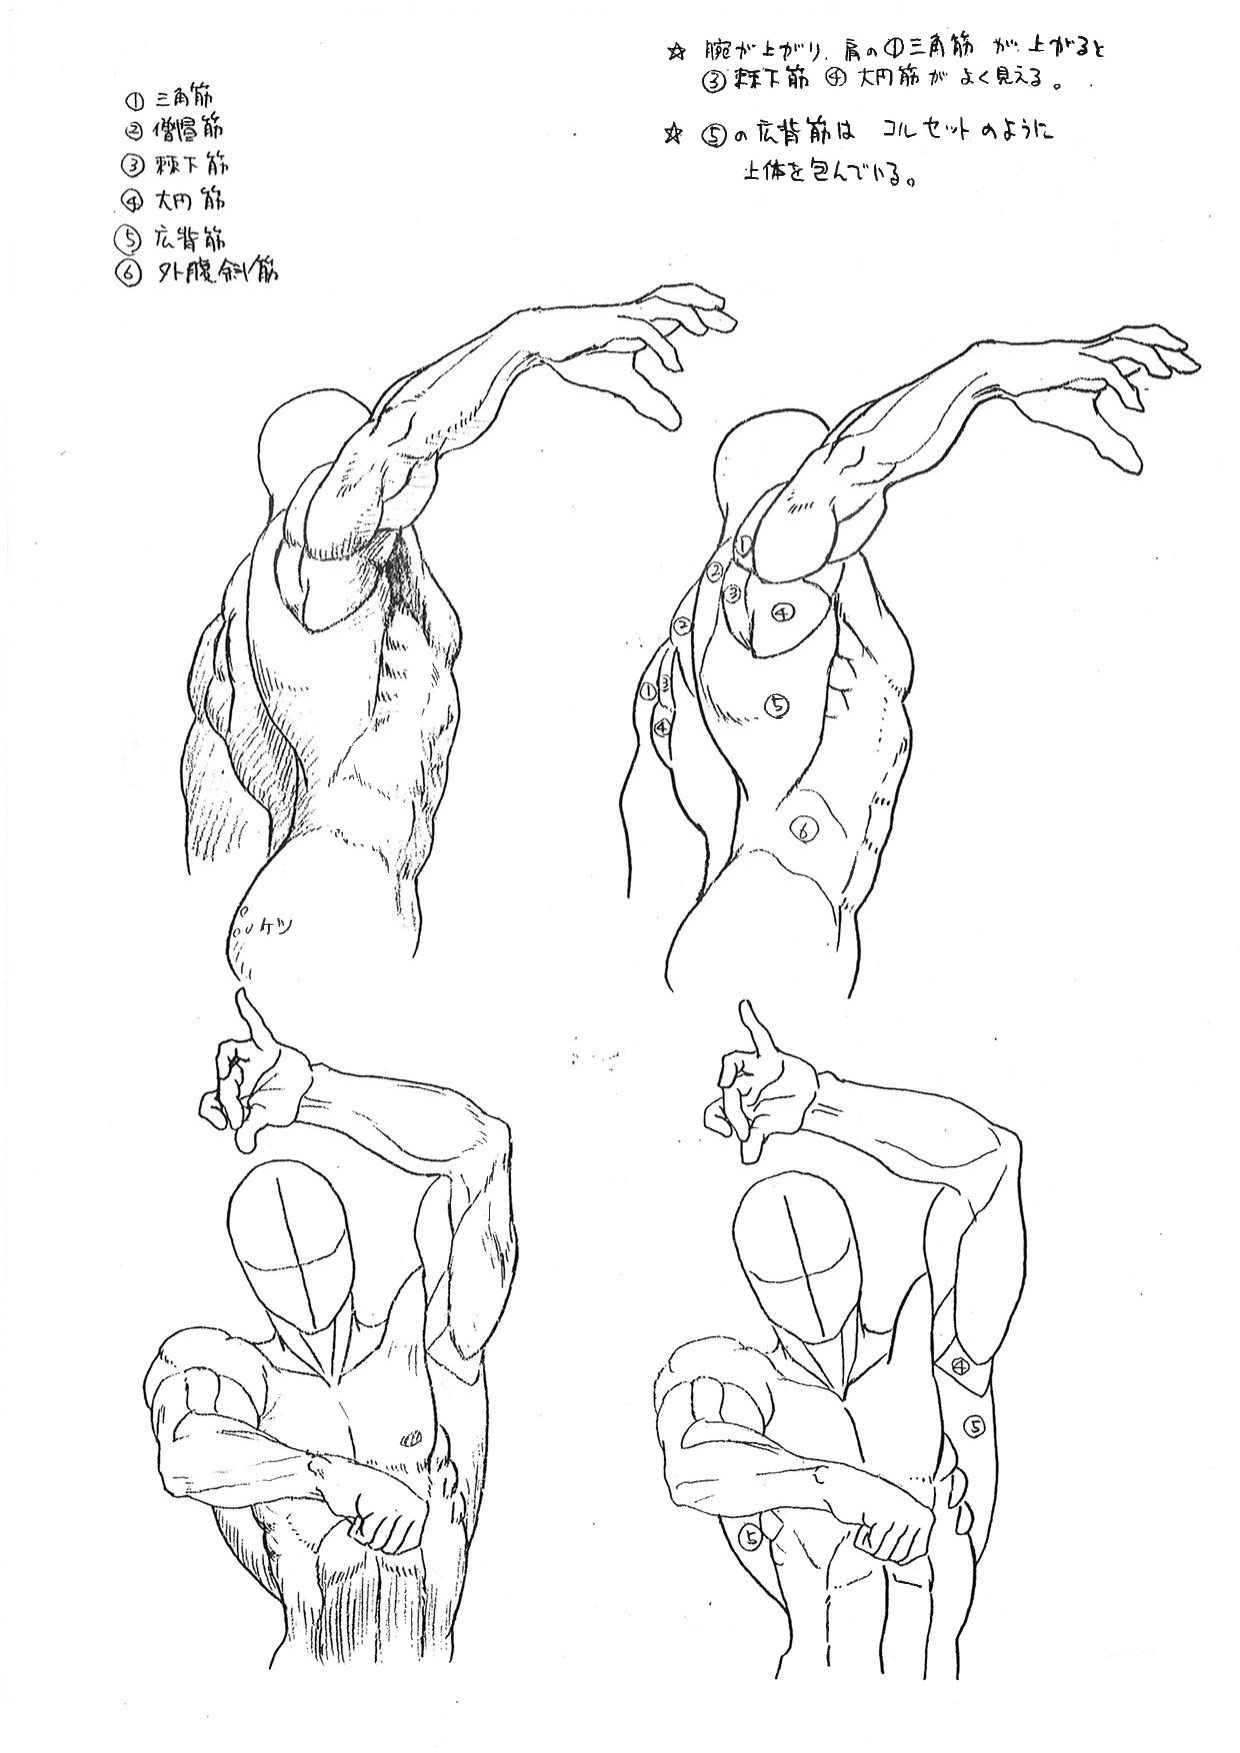 Street Fighter anatomy guide 7 out of 9 image gallery